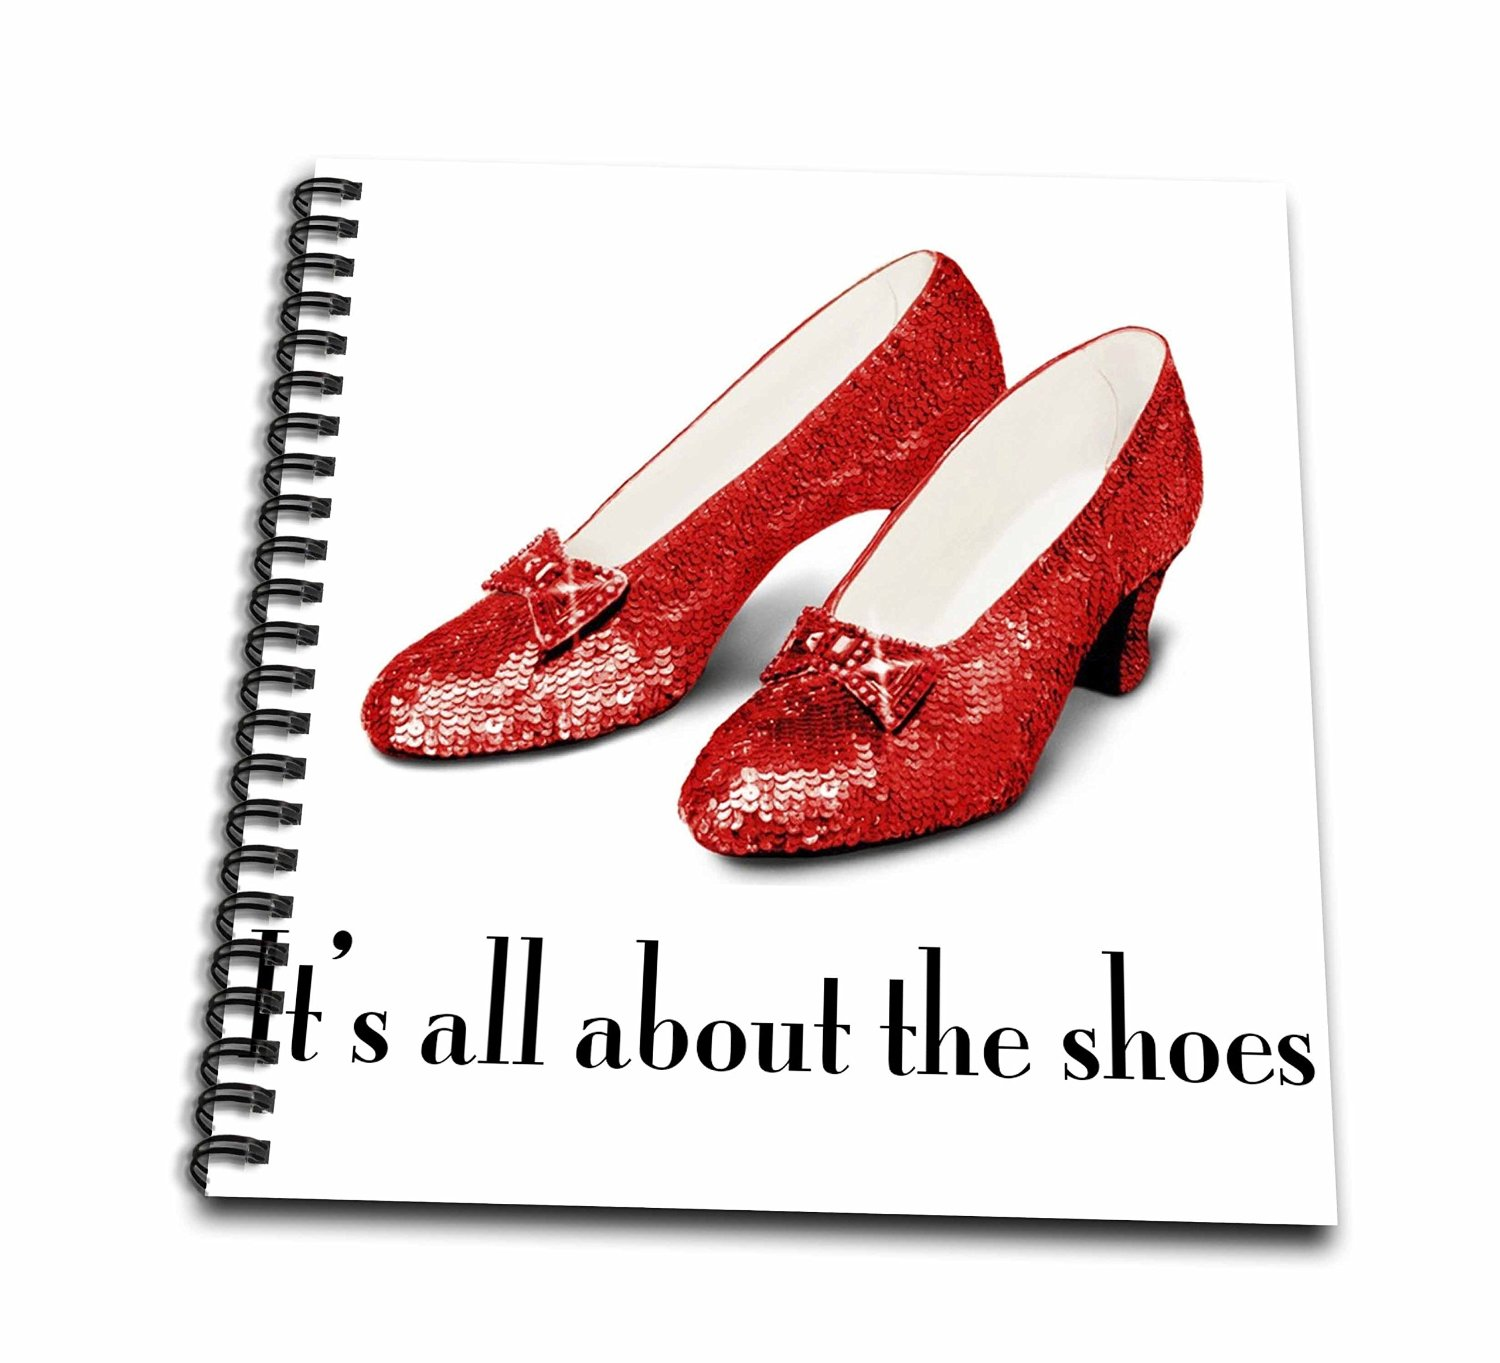 buy girls sparkly red ruby slippers dorothy wizard of oz shoes uk